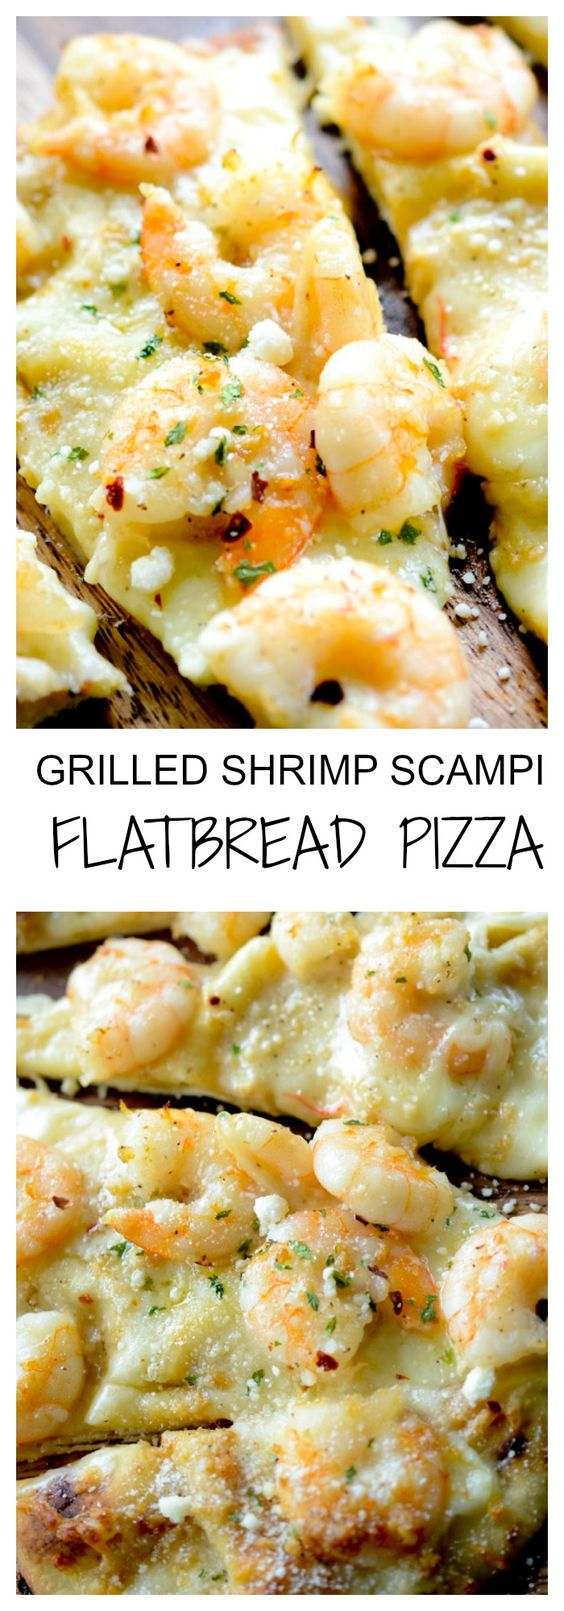 Flats, Pizza and Wraps on Pinterest